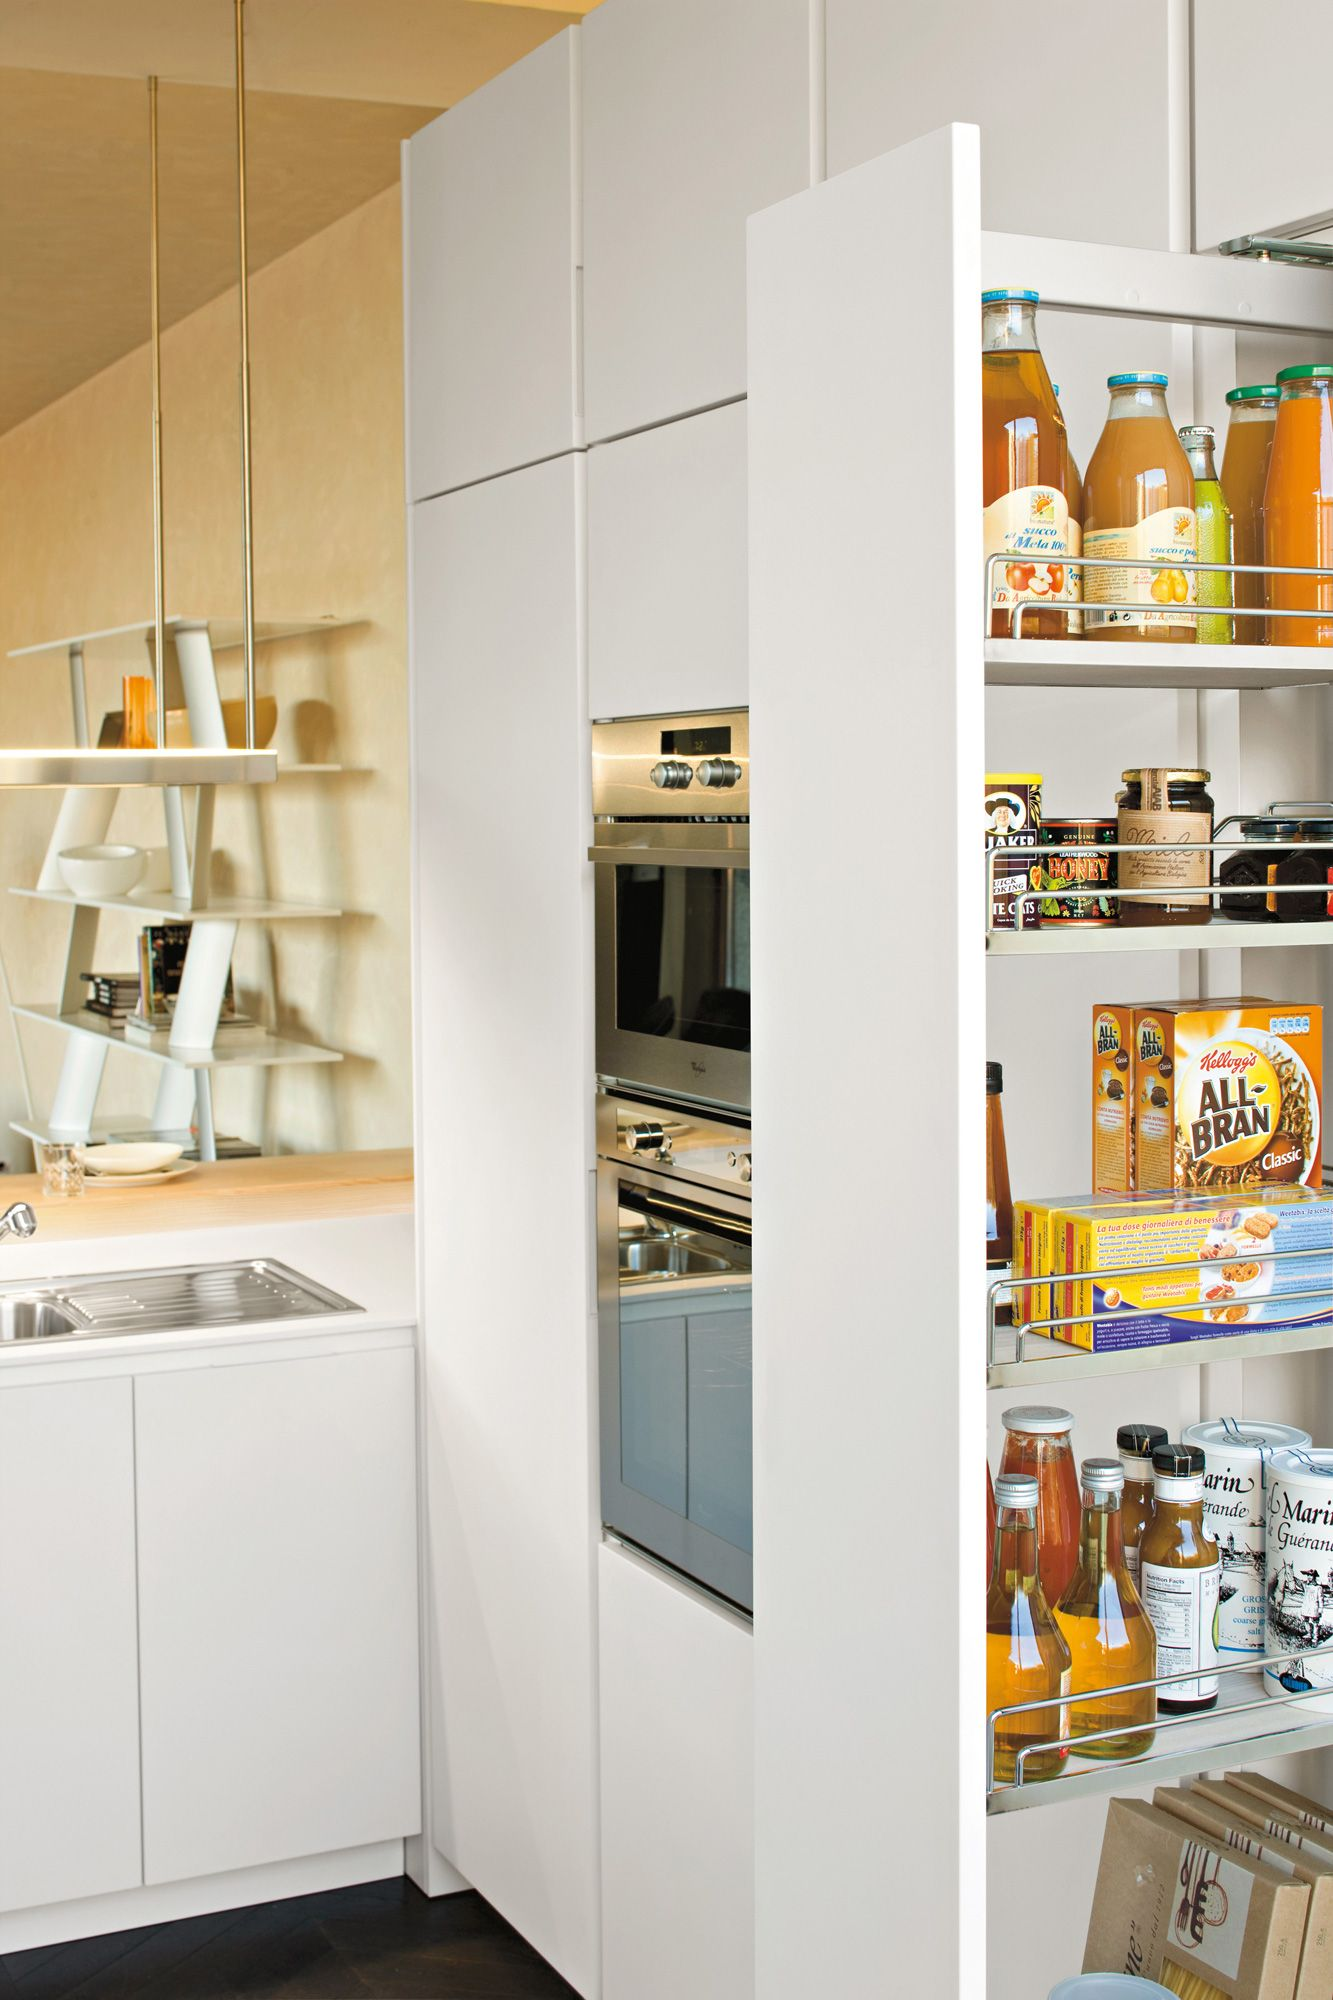 armadio dispensa cucina moderna Orange | arredamento | Pinterest